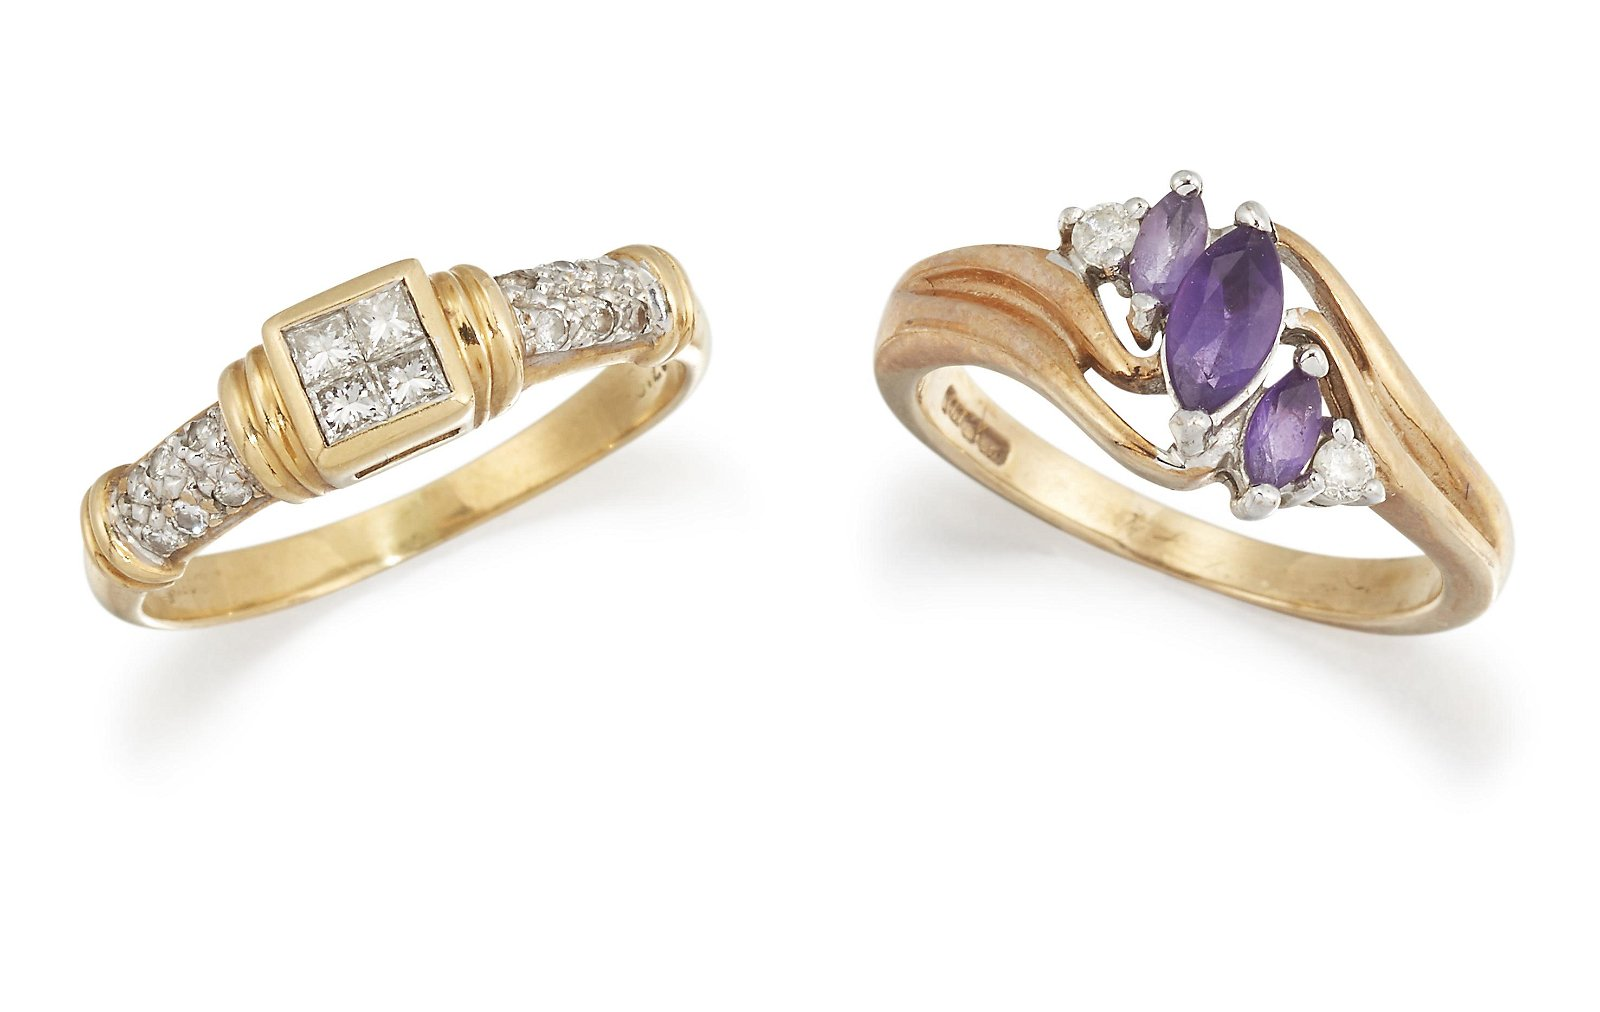 AN 18CT DIAMOND RING AND A 9CT AMETHYST RING, the